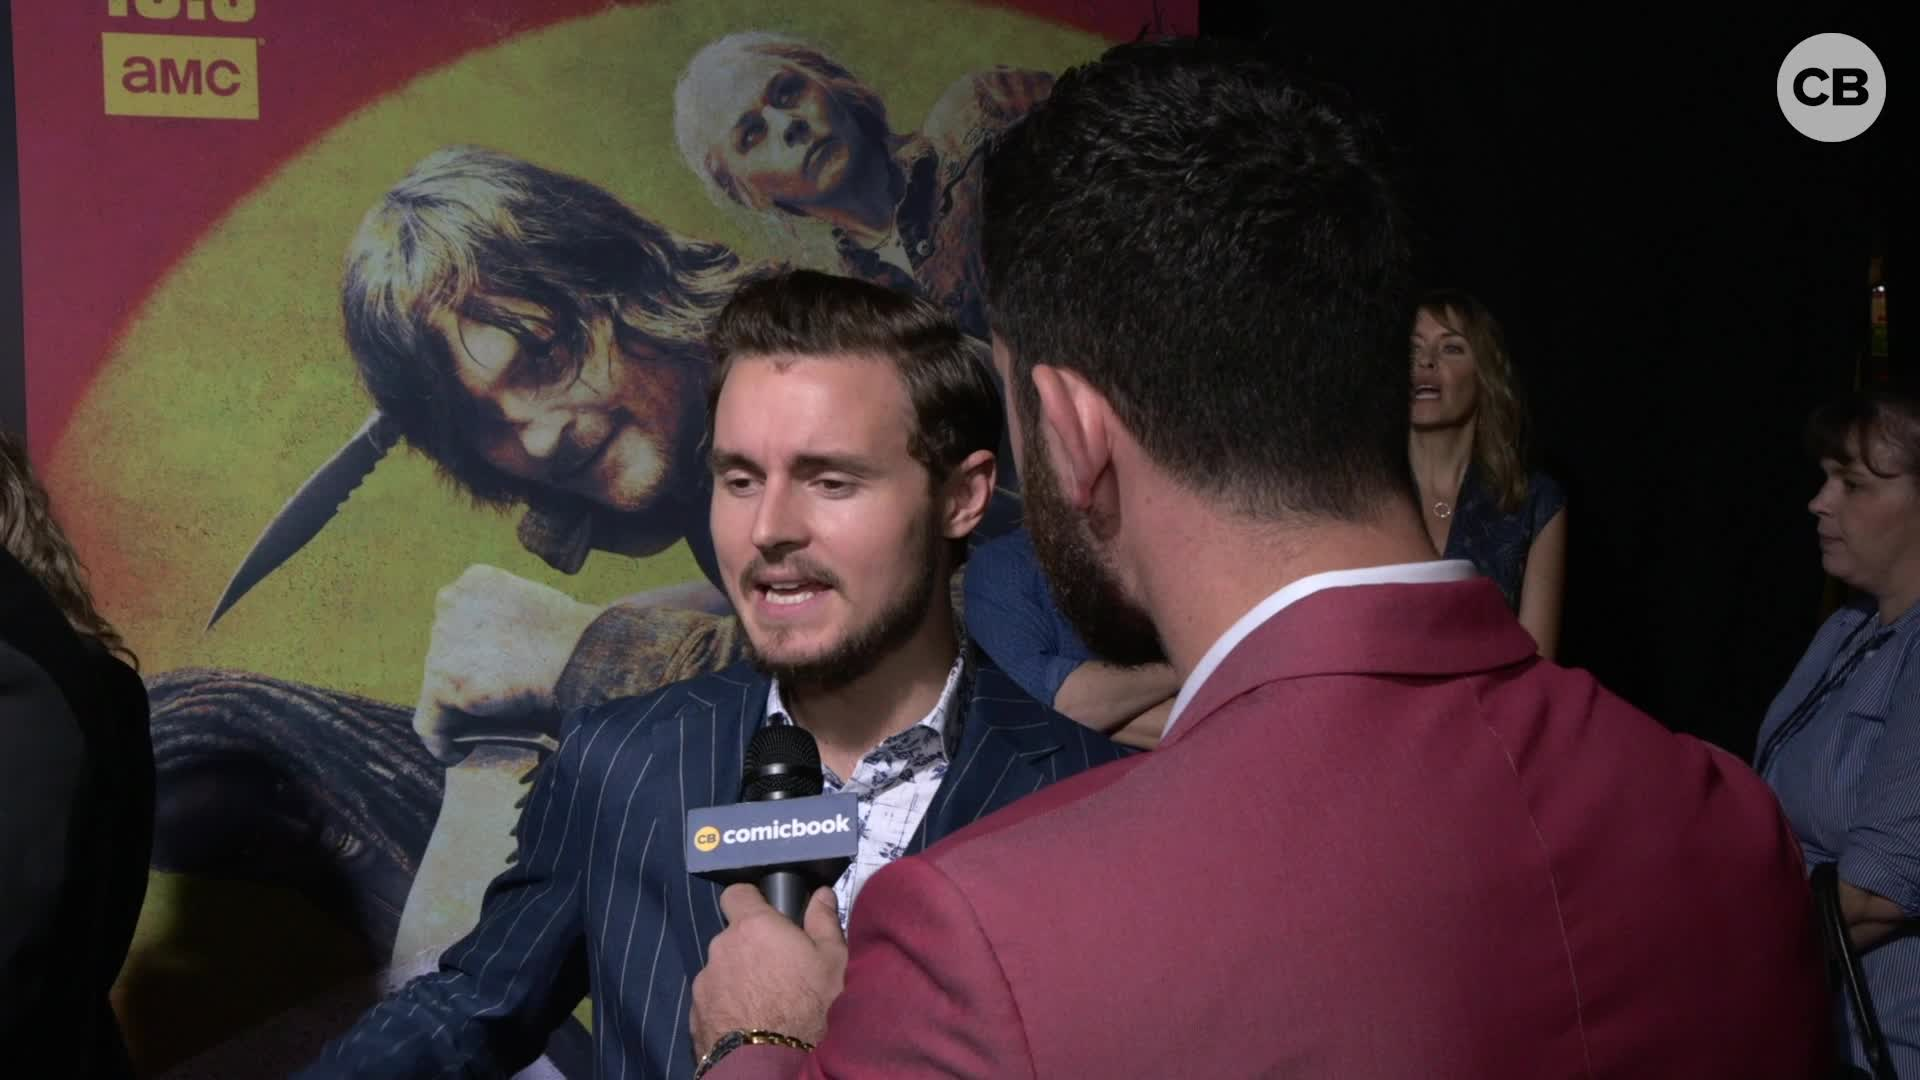 Callan McAuliffe - THE WALKING DEAD Season 10 Red Carpet Premiere Interview screen capture